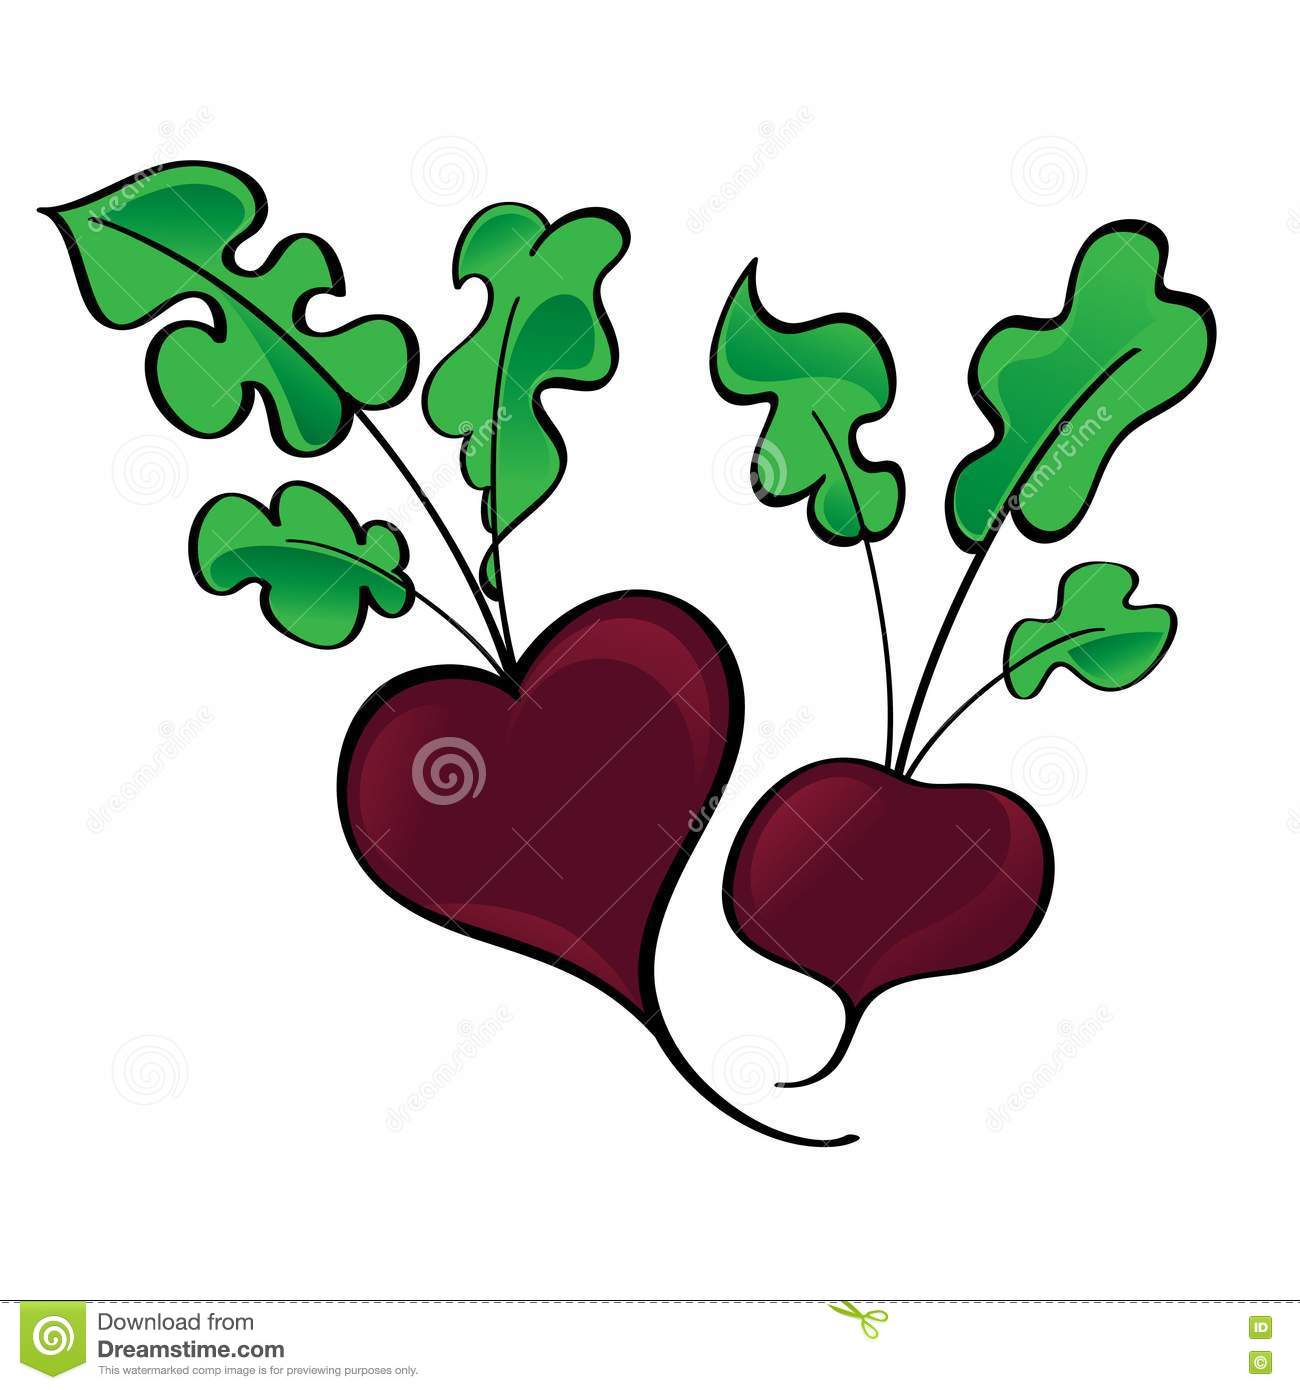 free clipart beets - photo #29